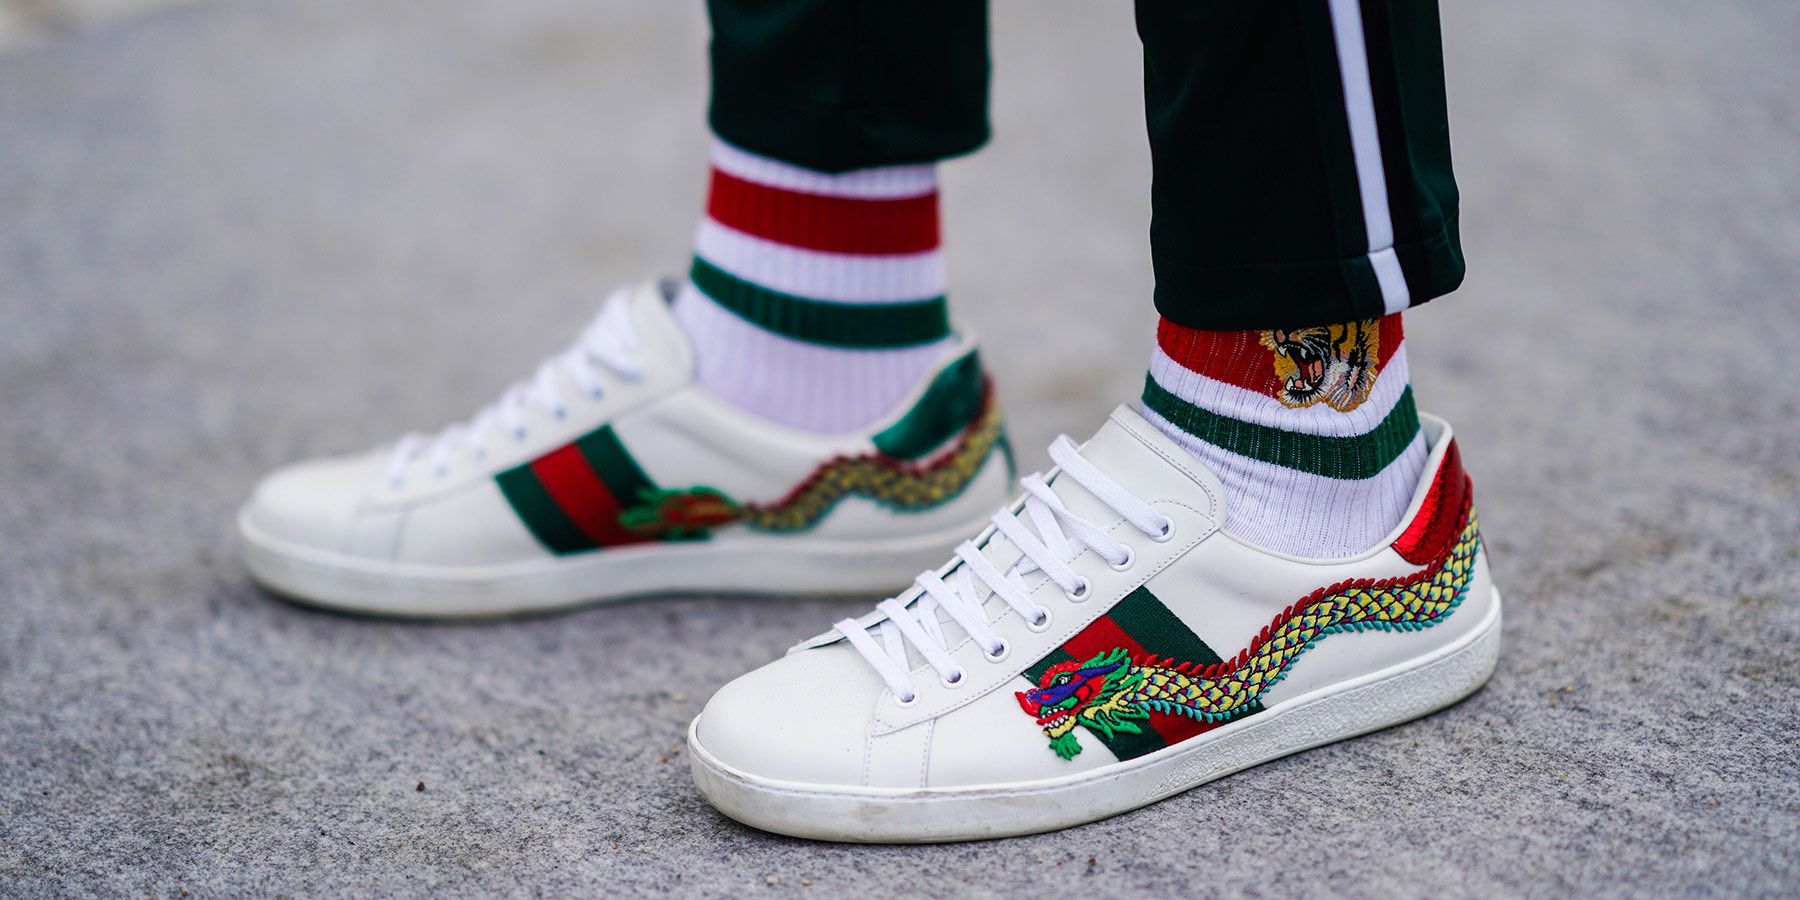 gucci zapatillas blancas dragon